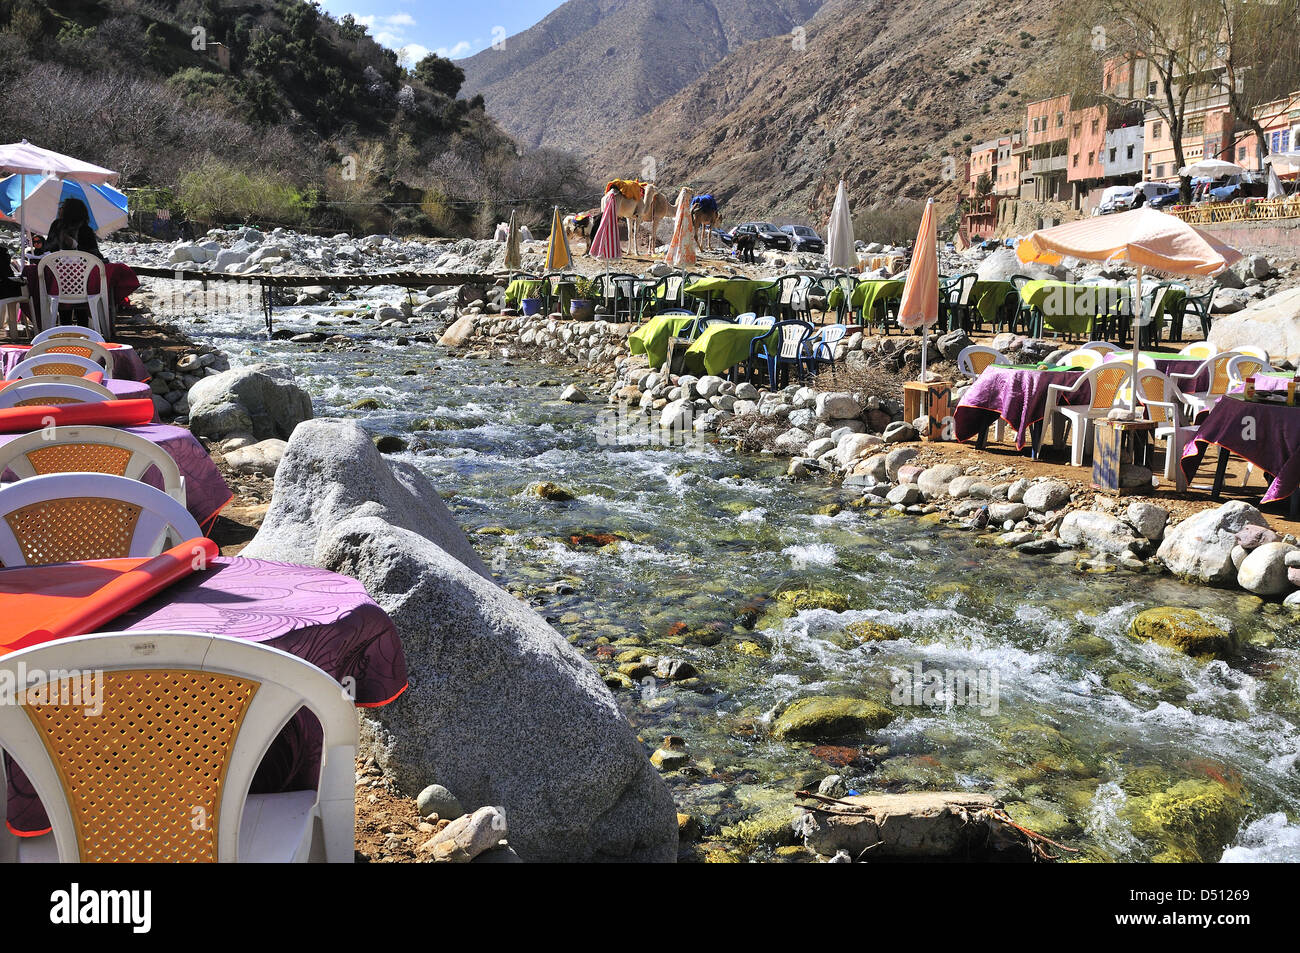 River sides eateries line the river side of the popular Setti Fatma near the Cascades Ourika Valley ,Morocco - Stock Image